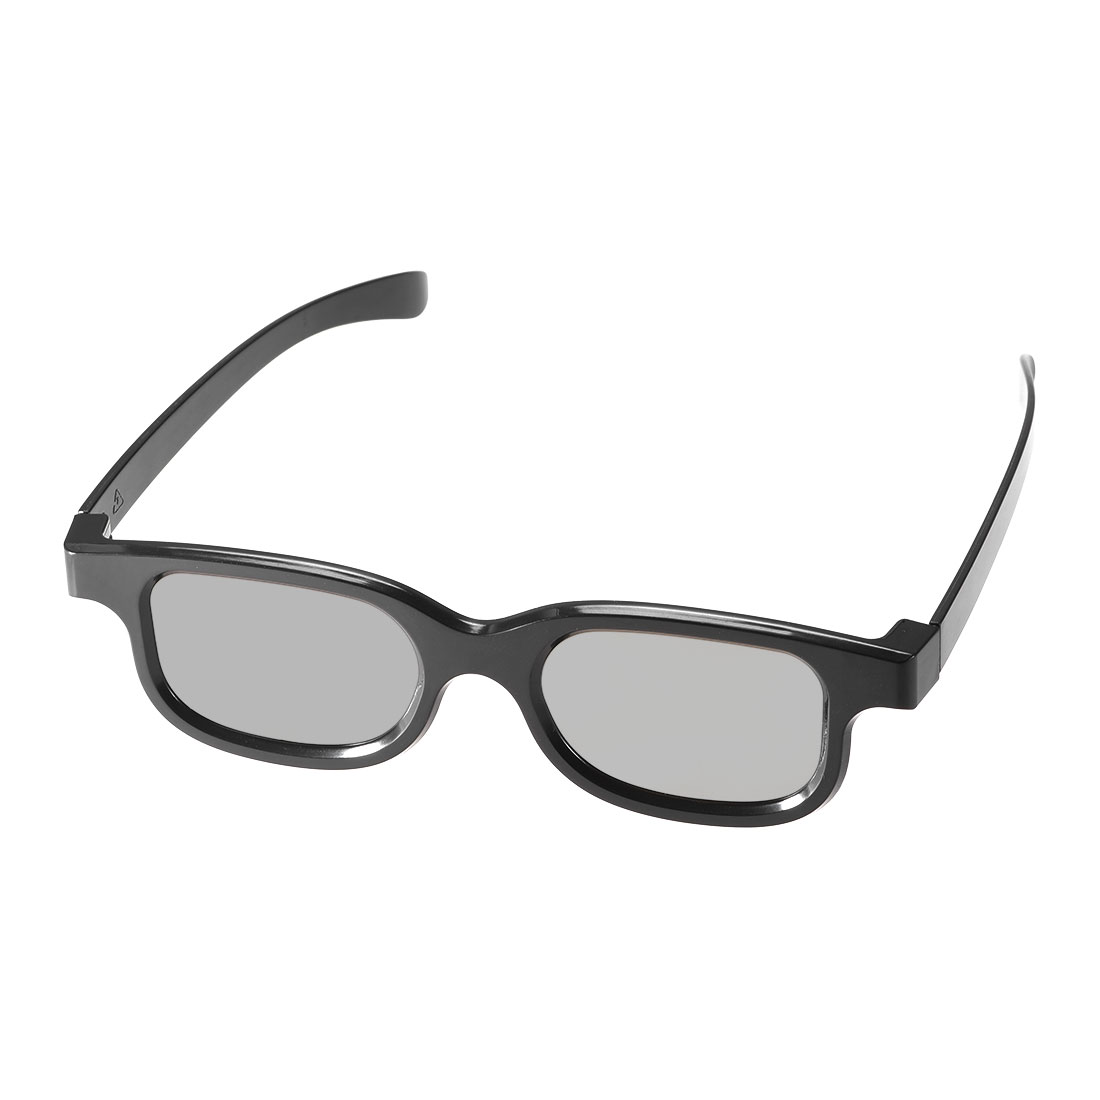 3D Polarized Glasses Compatible with Reald Cinema 5pcs